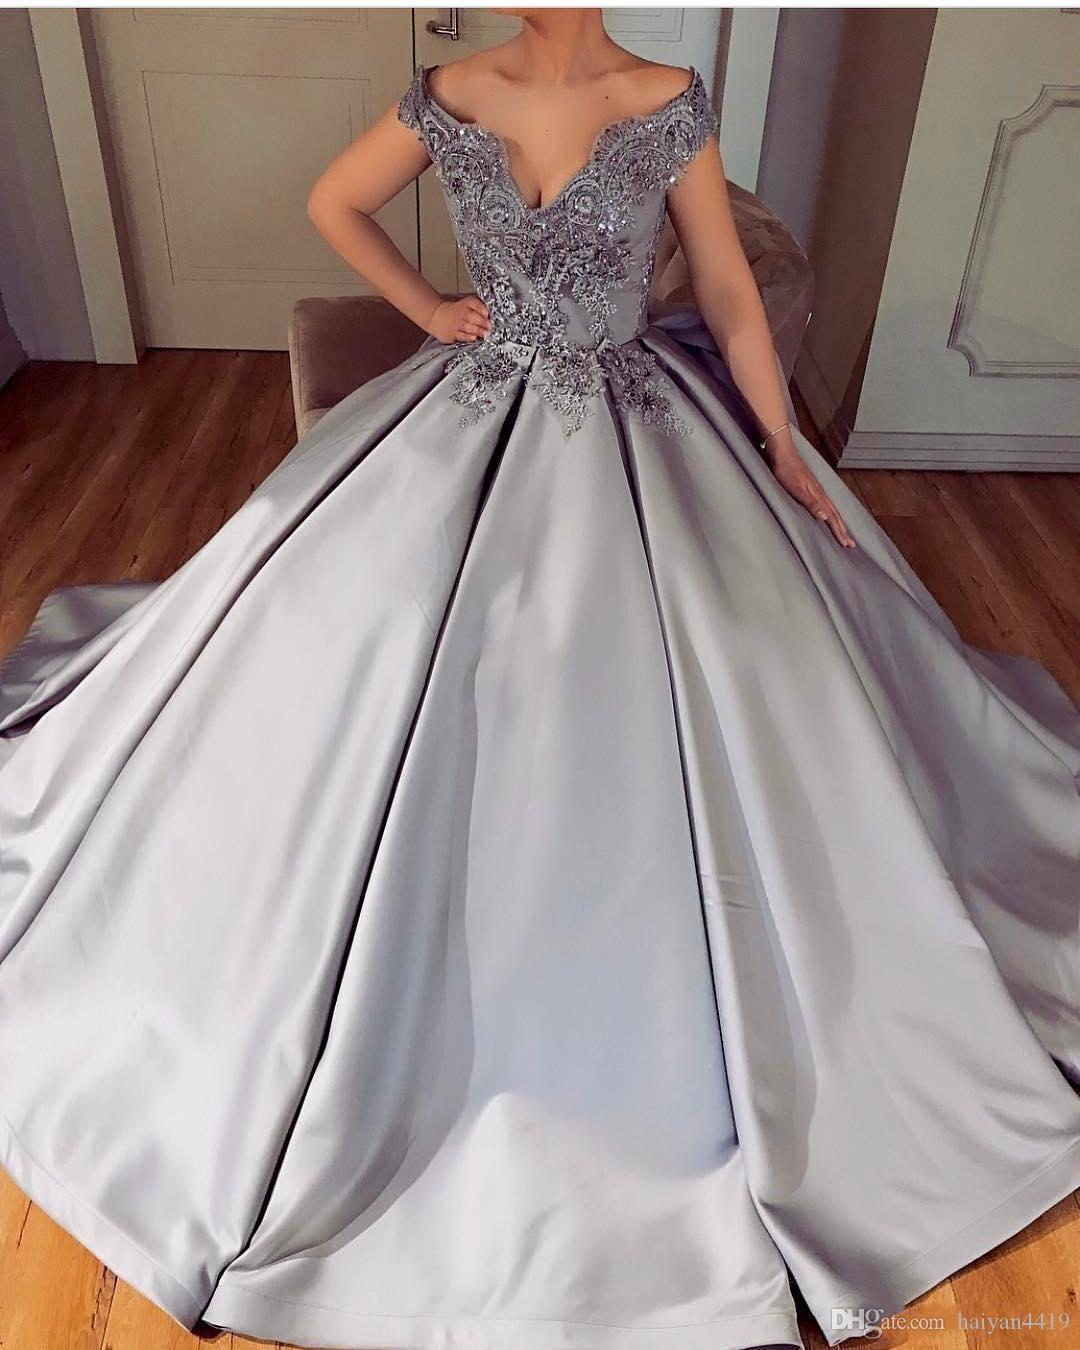 36af655467d7 2018 Silver Luxury Prom Dresses V Neck 3D Floral Lace Appliques Beaded  Backless Off Shoulder Sweep Train Ball Gown Satin Evening Party Gowns Camo  Prom Dress ...